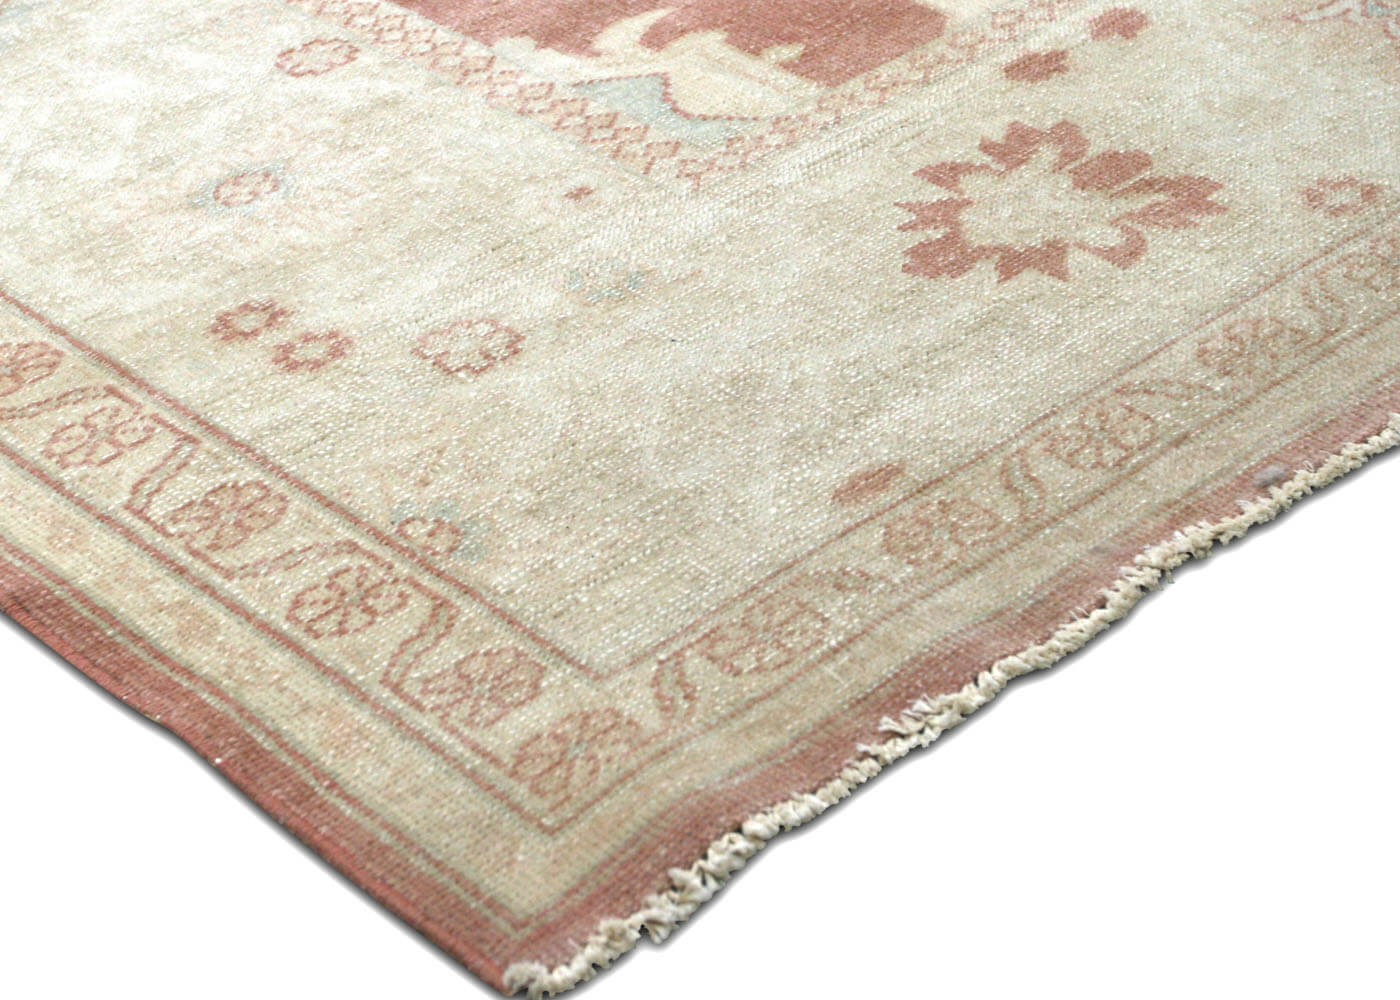 "Recently Woven Egyptian Sultanabad Carpet - 7'5"" x 23'6"""